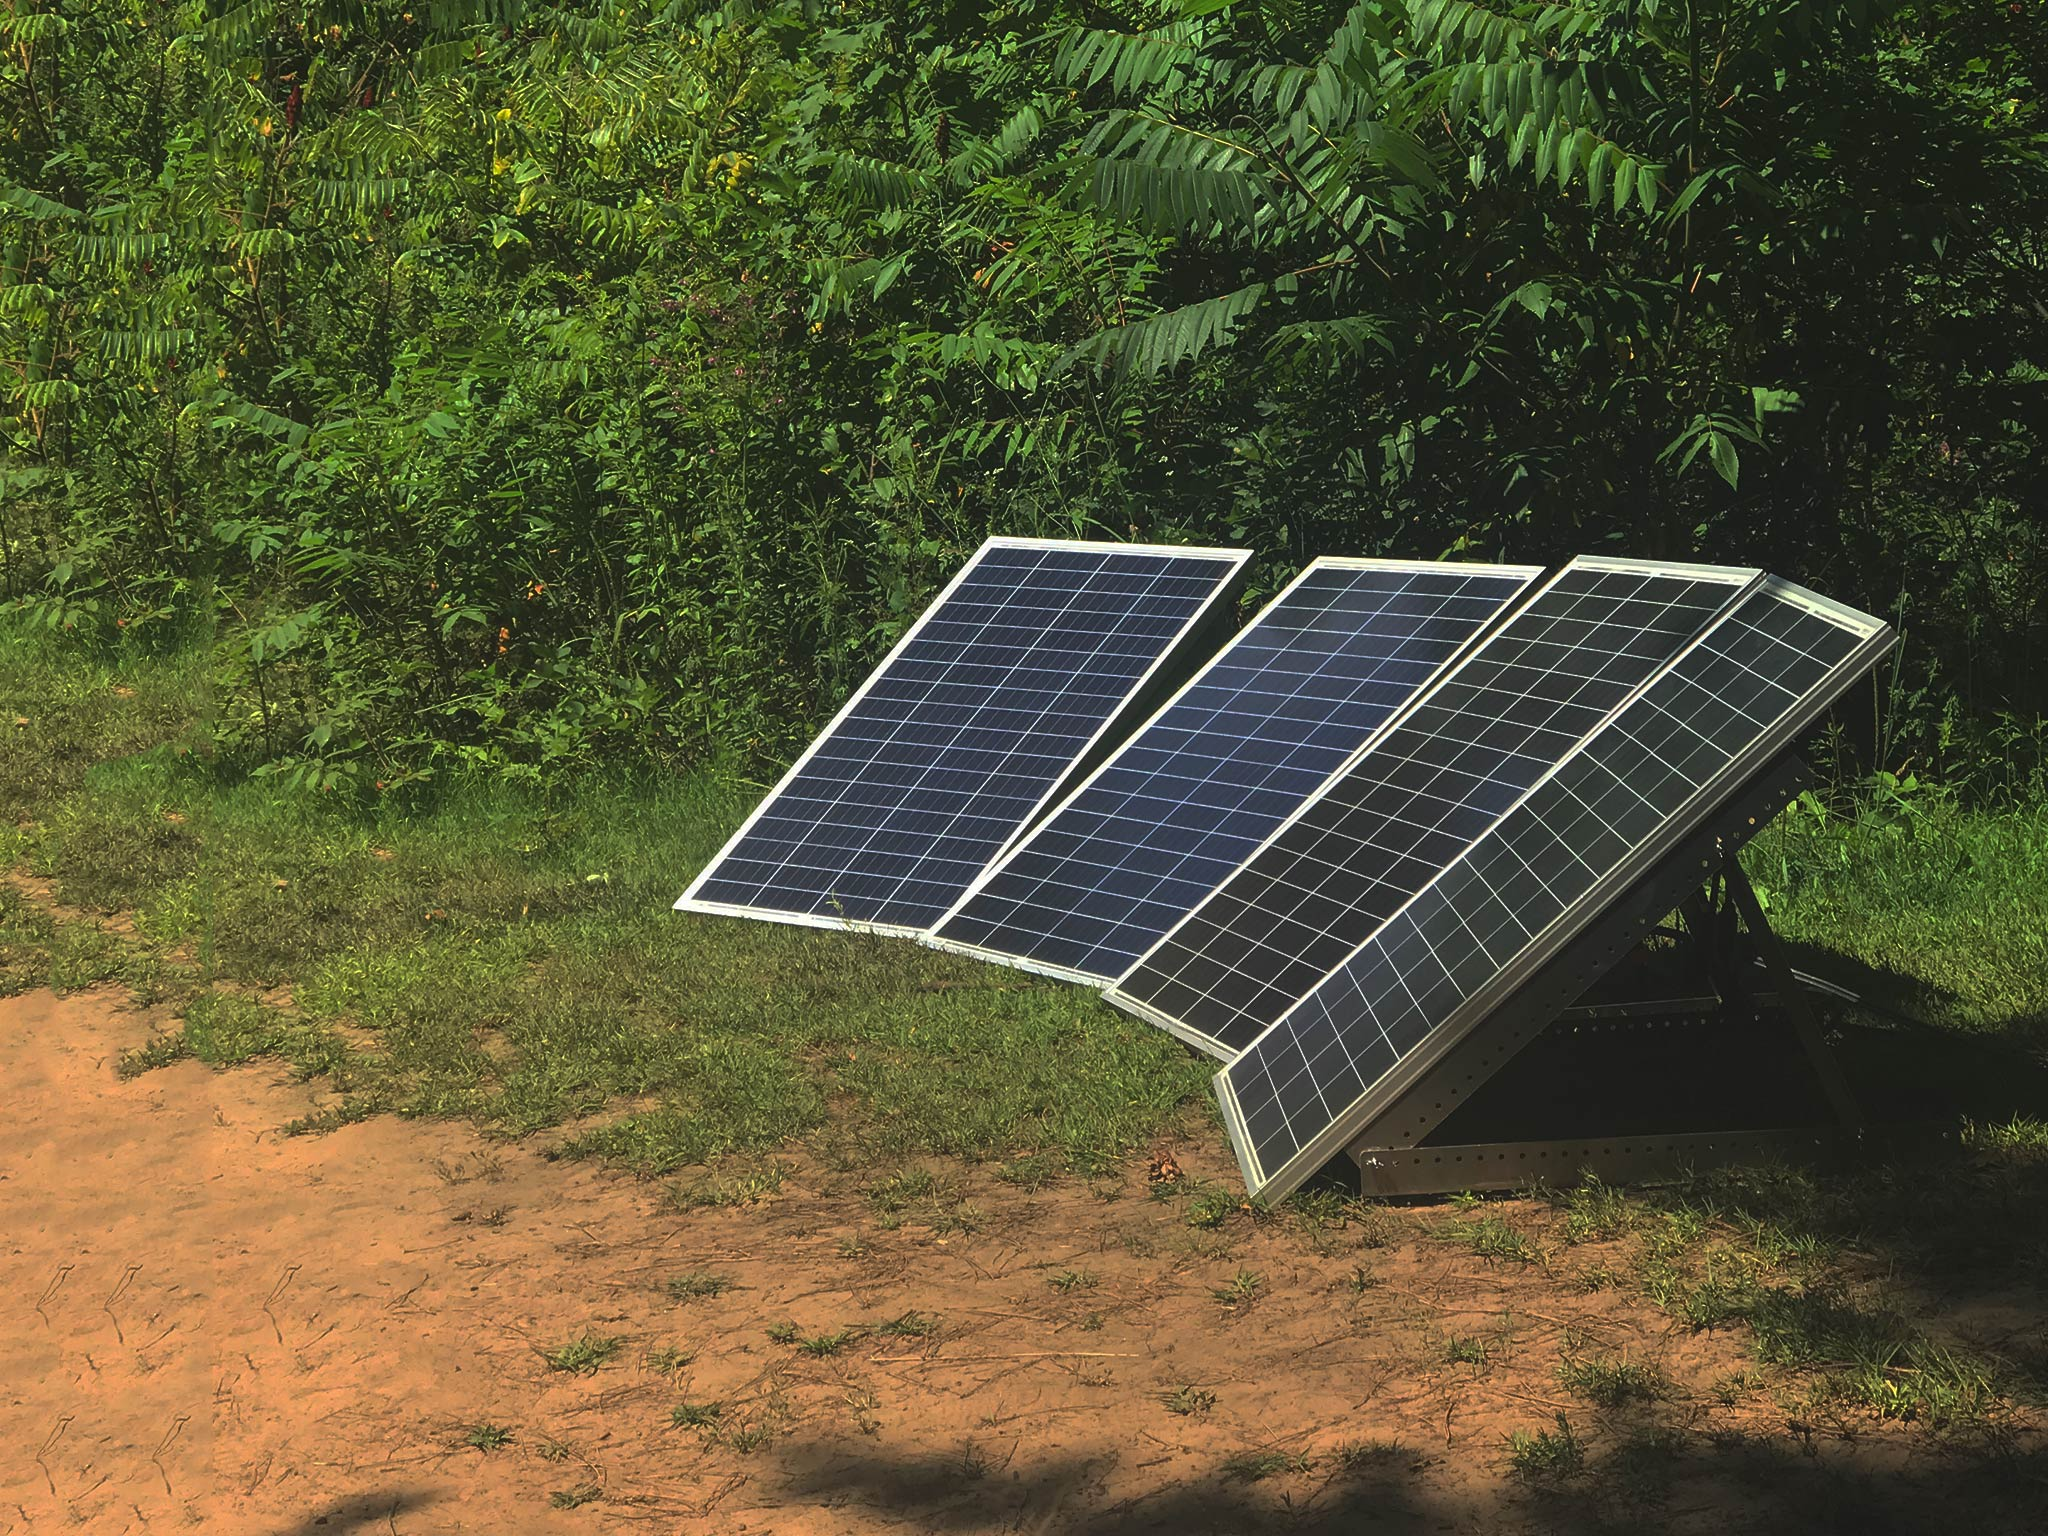 Underknown Works Off The Grid for Solar Day